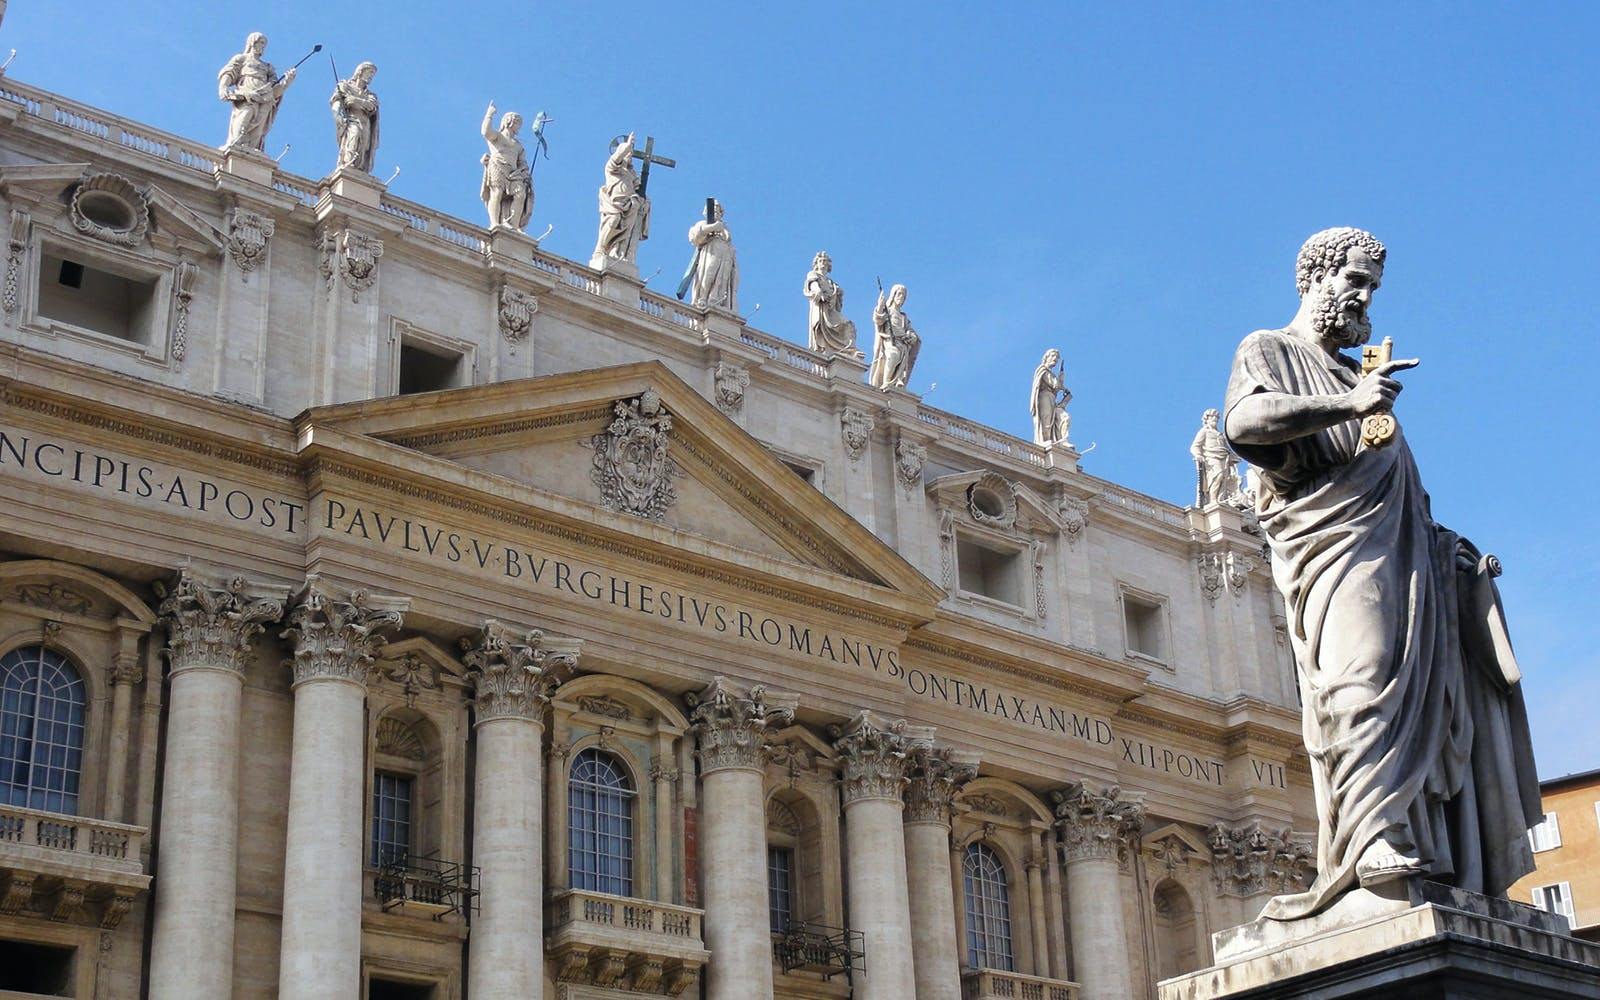 skip the line st peter's basilica tickets